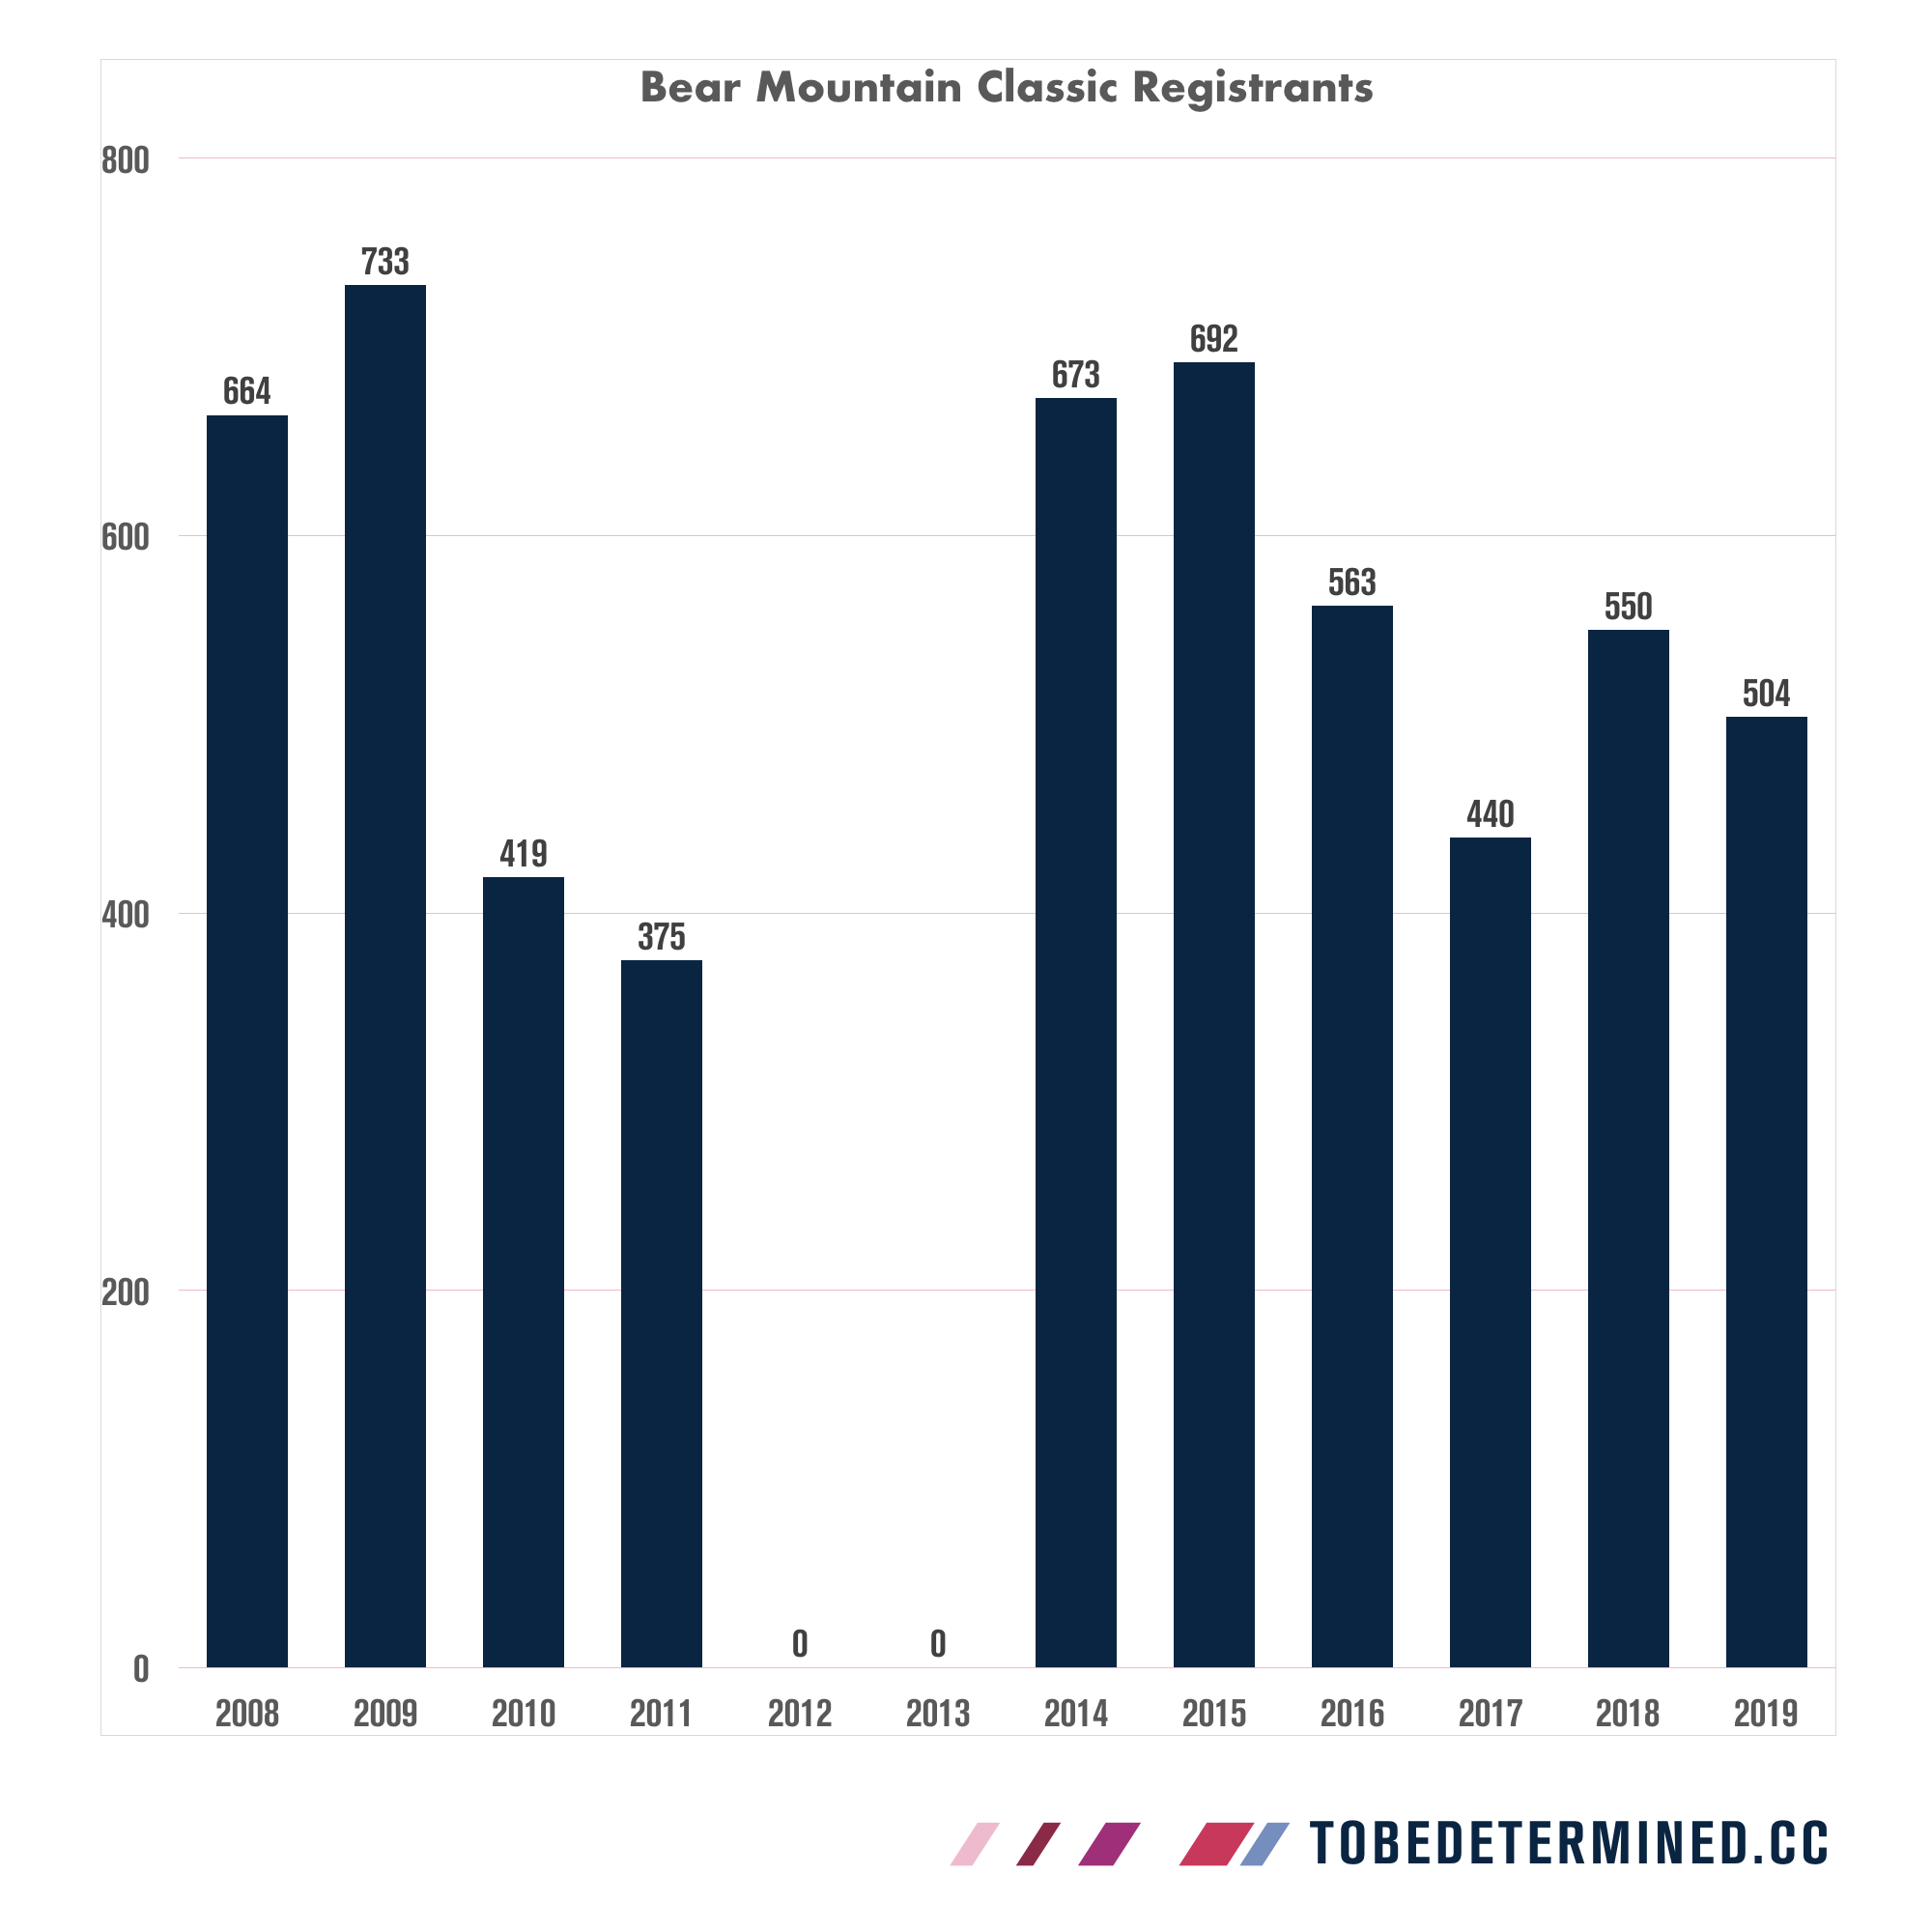 More than a decade of registration data for the Bear Mountain Classic in a single chart. Note: the 2010/2011 races featured an abbreviated course and field schedule while the 2012/2013 races were outright cancelled due to construction on course.